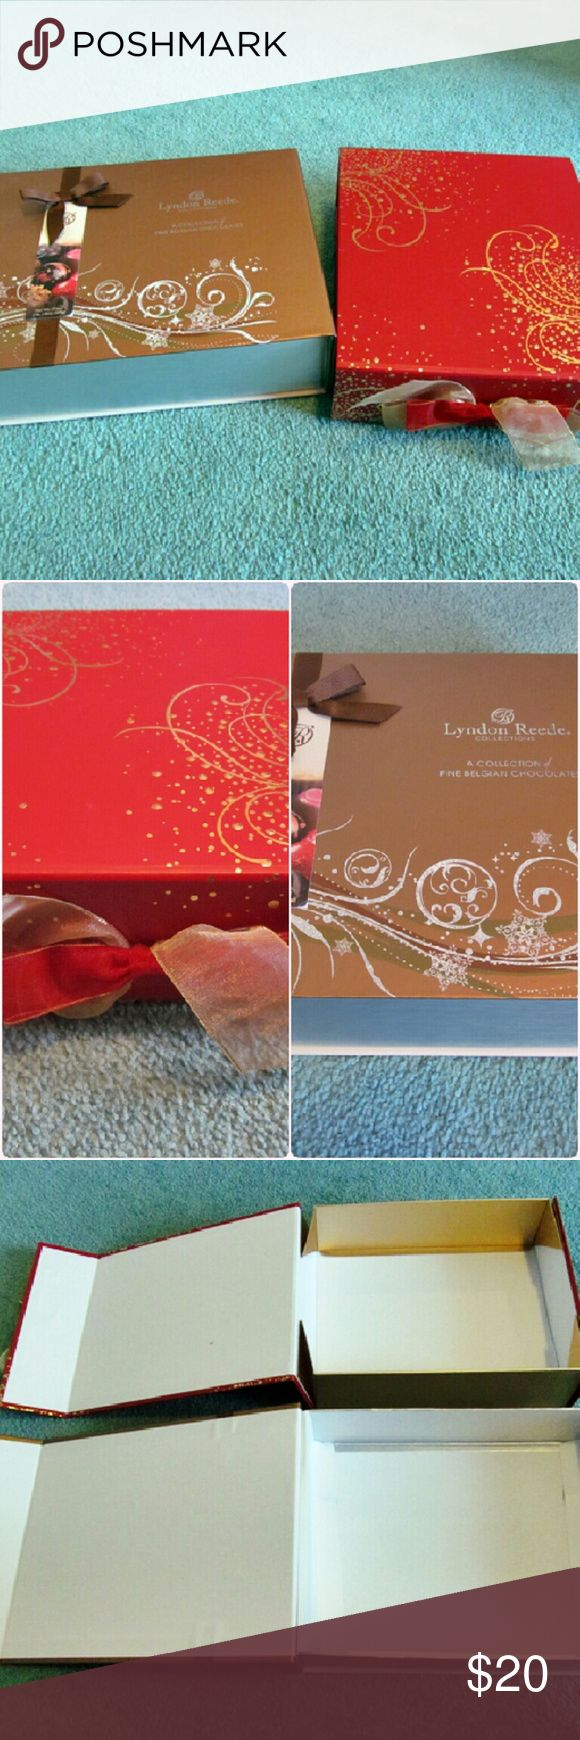 """Lyndon Reede & Gudrun Chocolate Holiday Boxes Thick board boxes. They both have magnetic closures. The red box has a bow on front. Both have glitter on top.  Red box measures approx. 9.75x8.5in Brown box measures approx. 10.75x8.5 in Both have approx. Depth of 2.5"""" Used to hold holiday chocolate sets but can be used to store knick knacks, Jewelry, gift wrapping, etc. Listing is for both boxes. Other"""